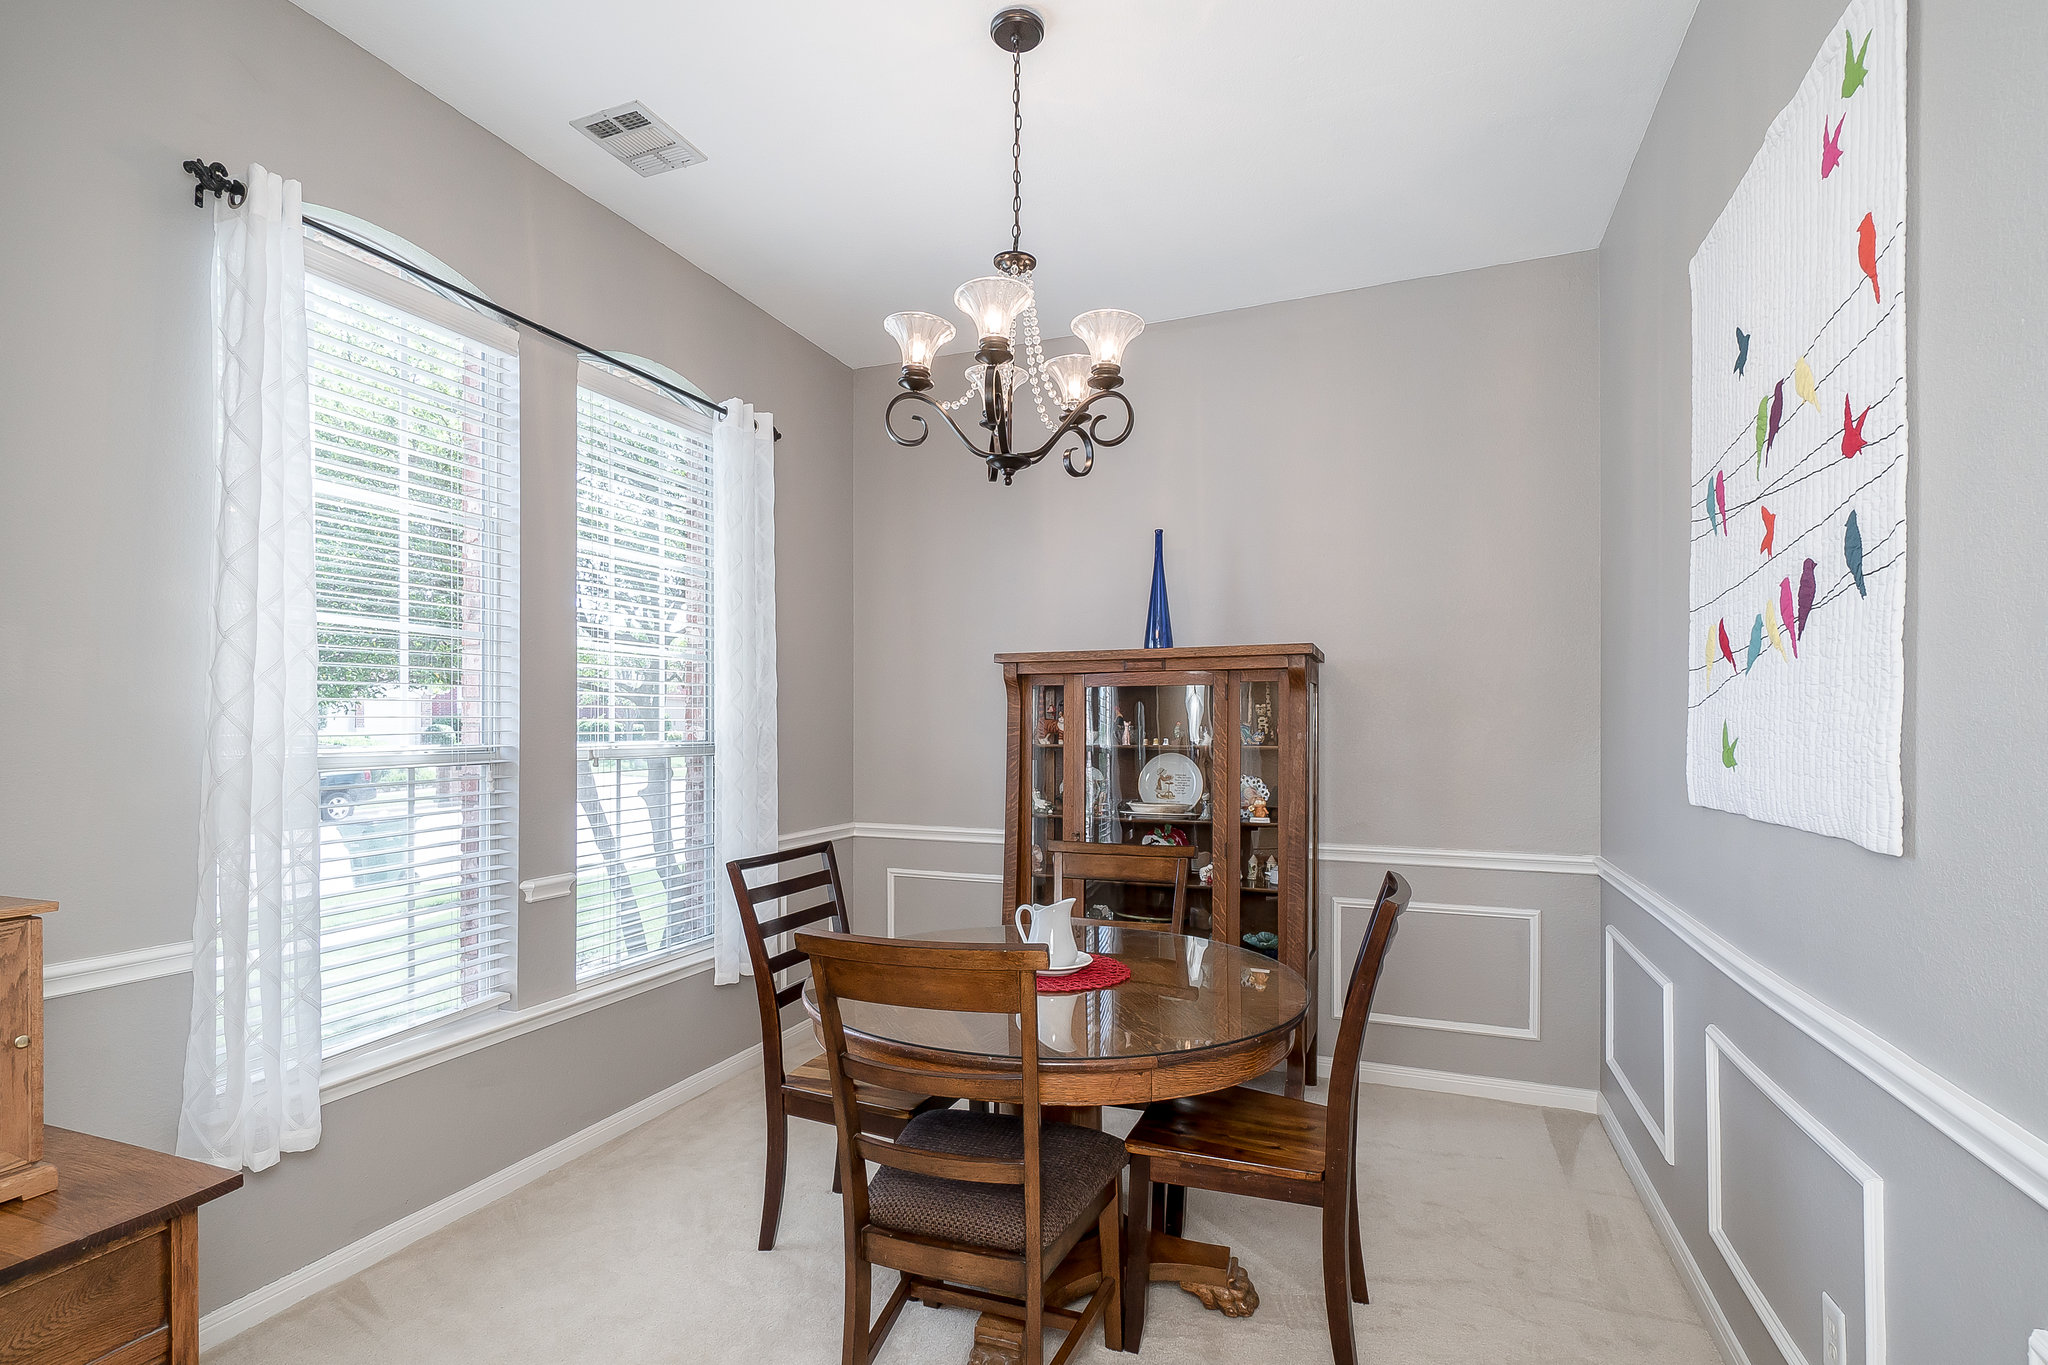 Open Floor Plan Wood Floors And Lots Of Natural Light Add To The Comfort This Home Dining Room Off Entry Is Perfect For Celebrating Special Occasions